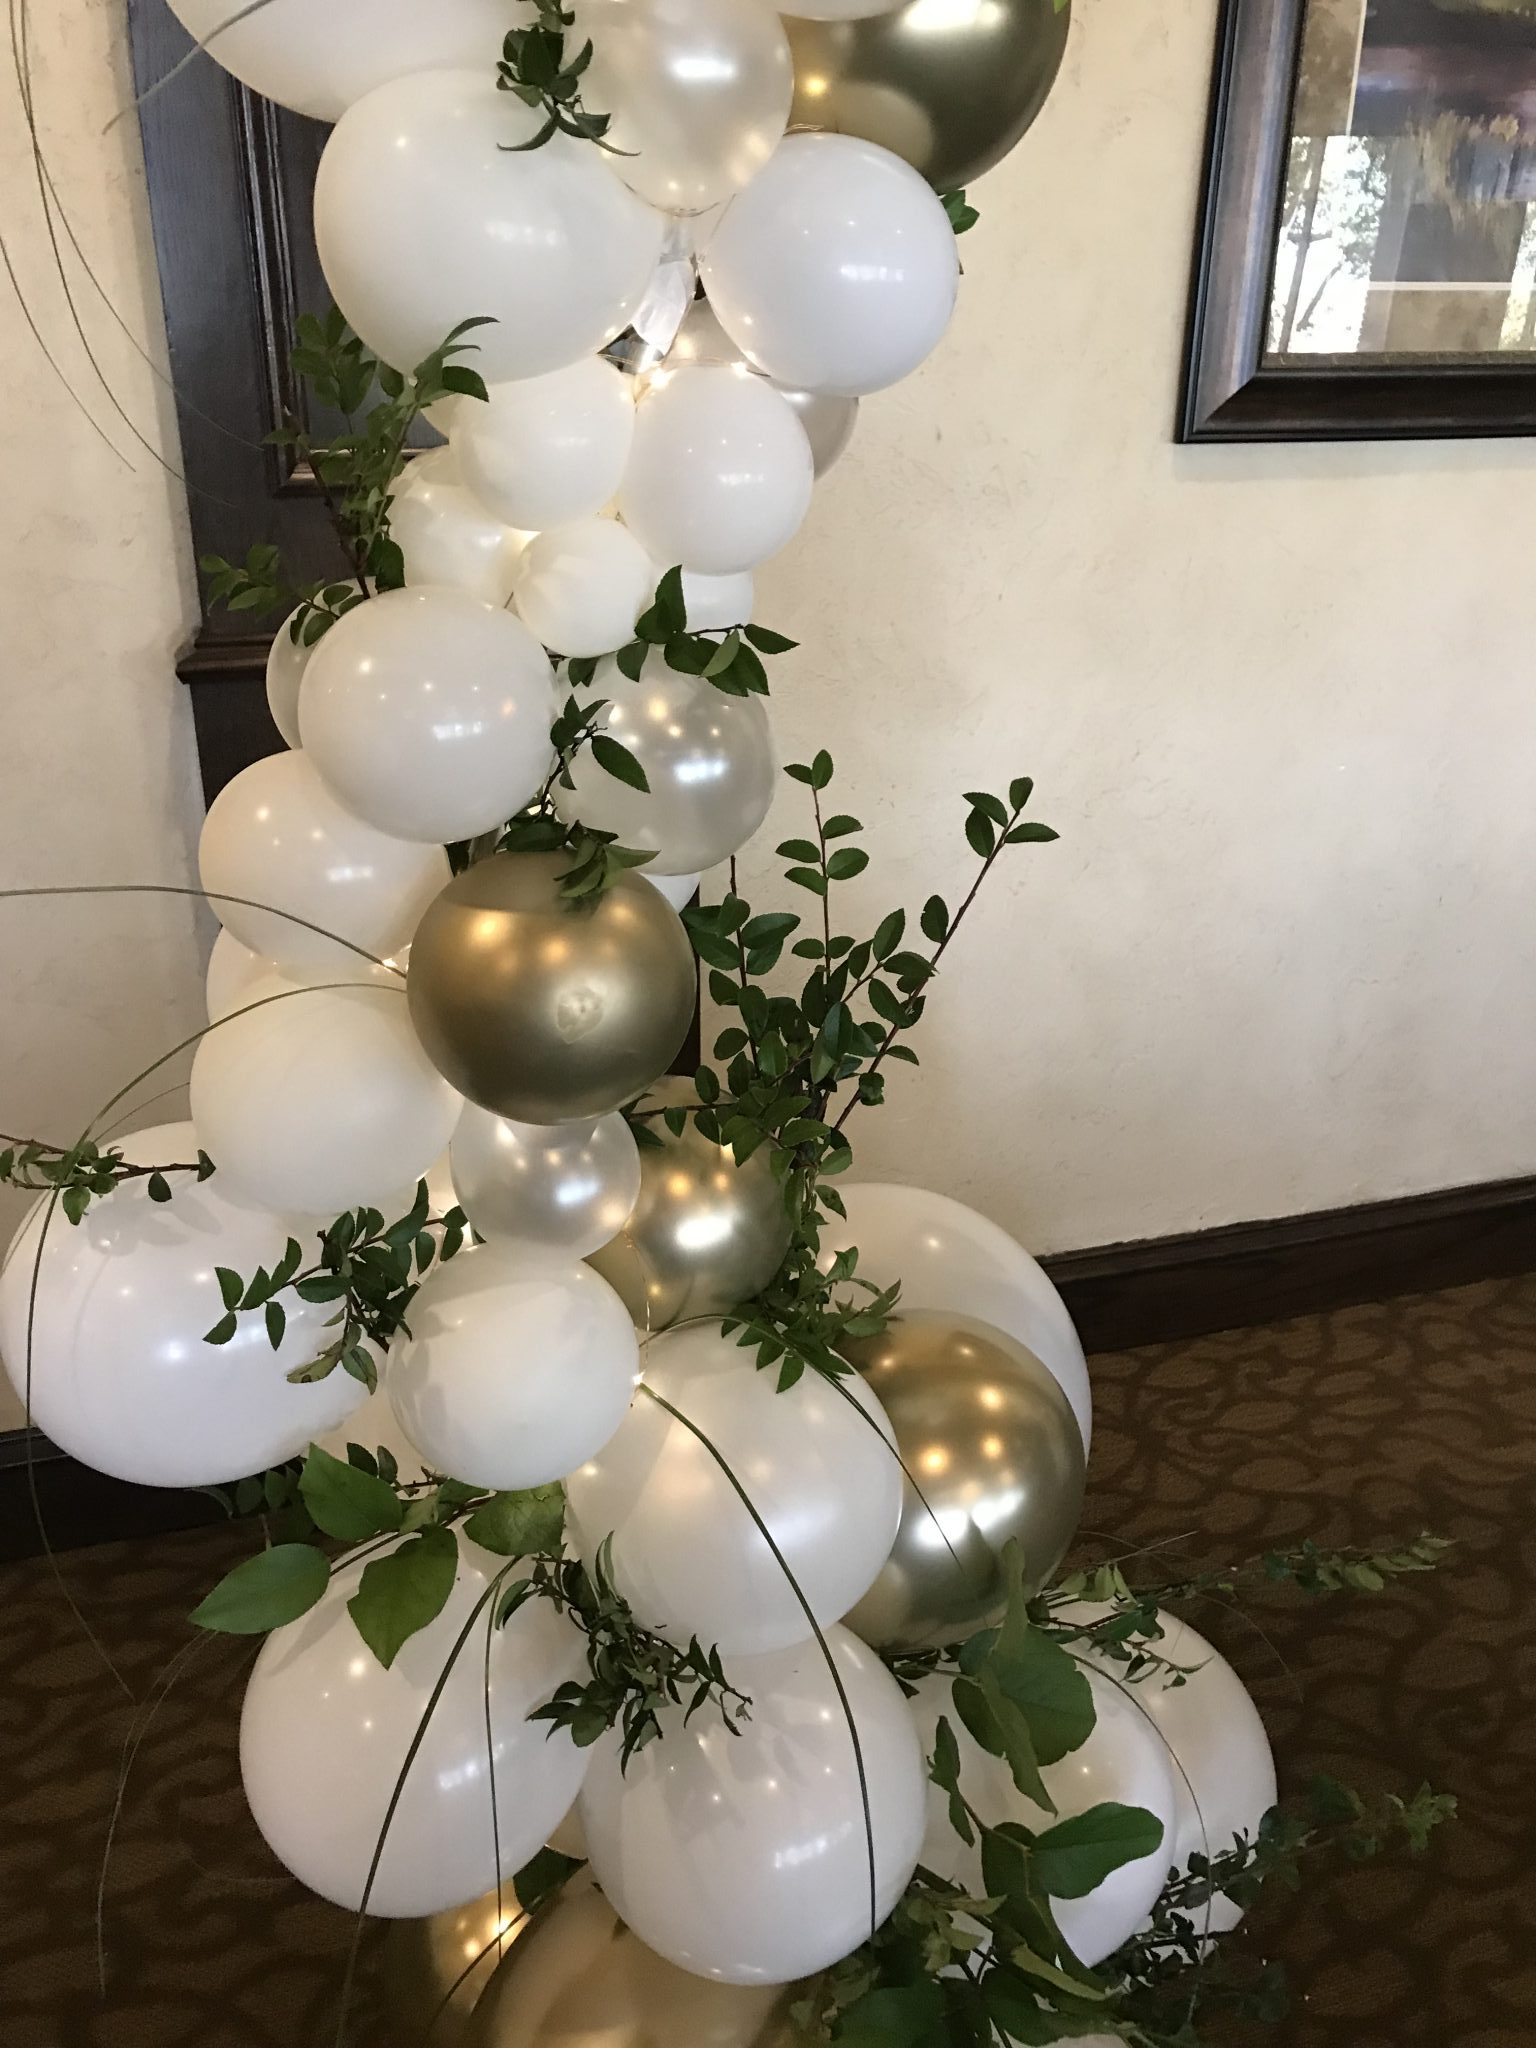 Organic Balloons with live garland and fairy lights